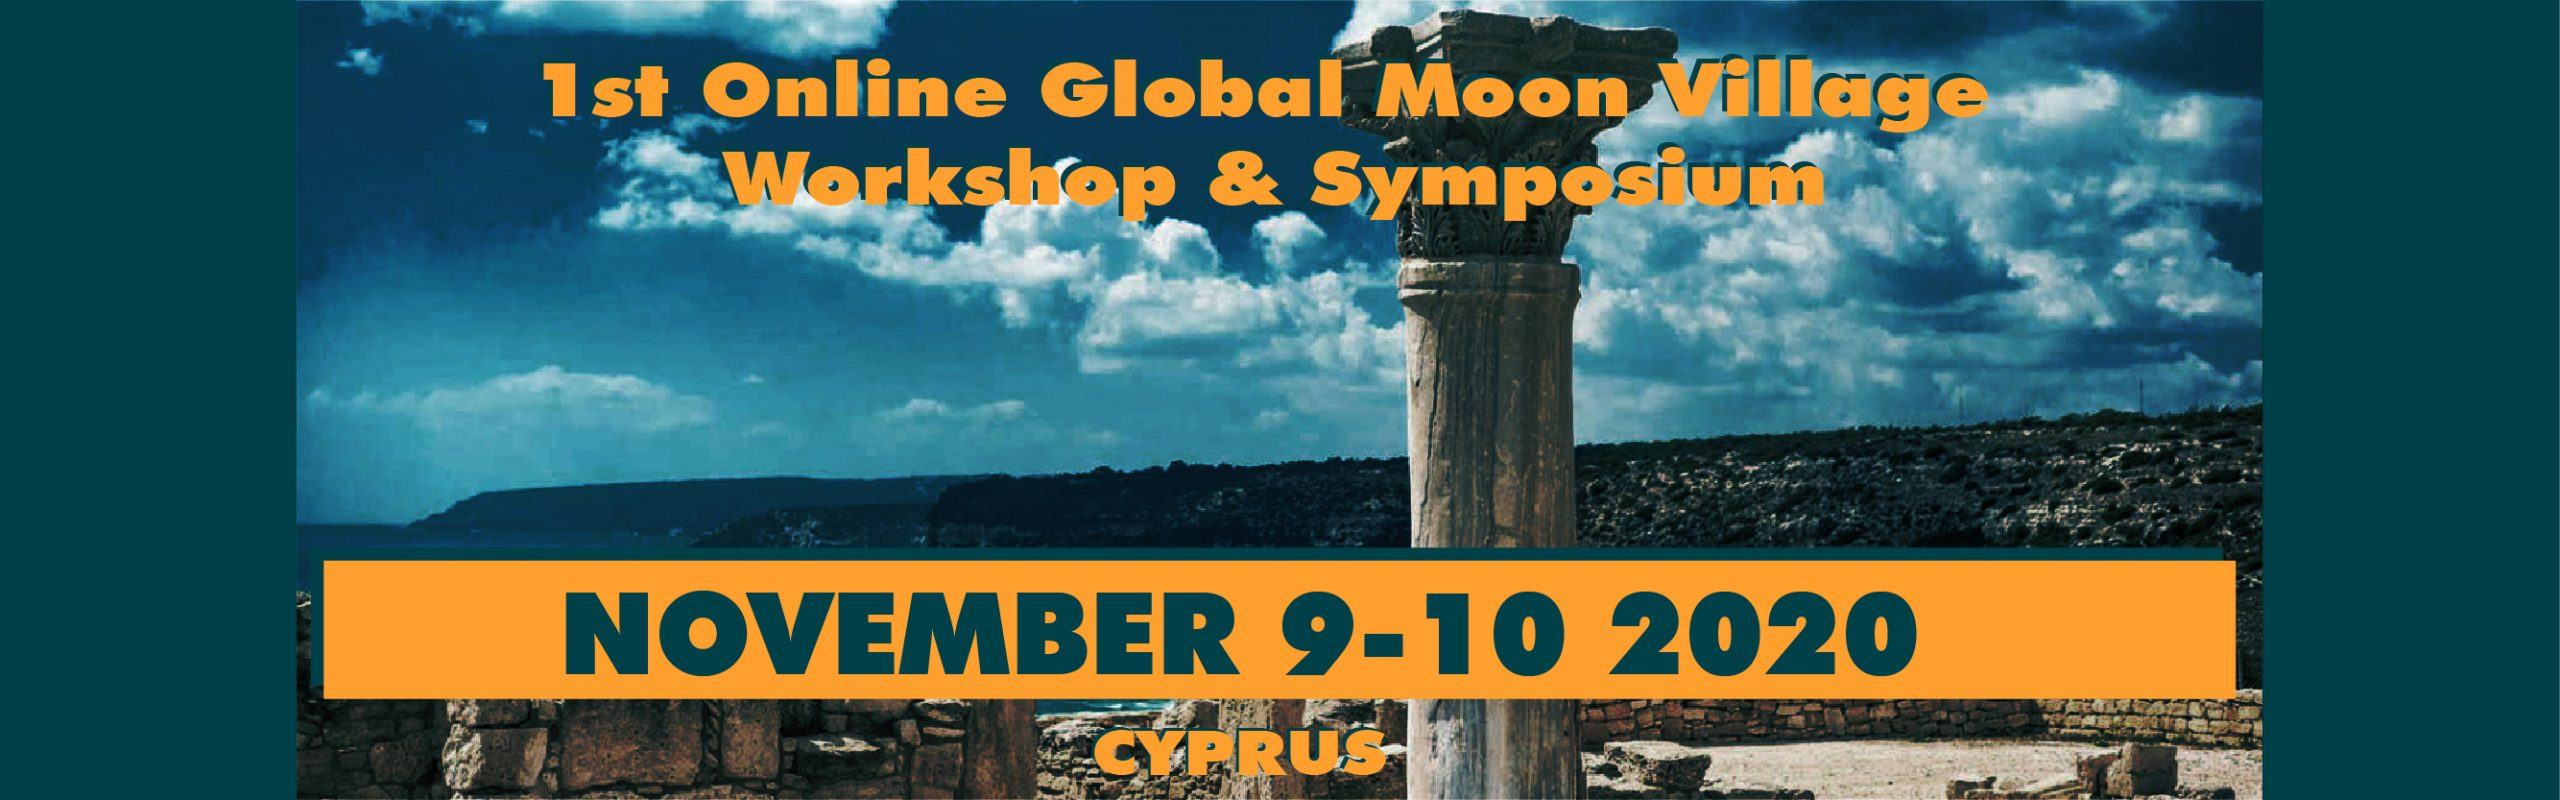 Call for Presentations – 1st Online Global Moon Village Workshop & Symposium